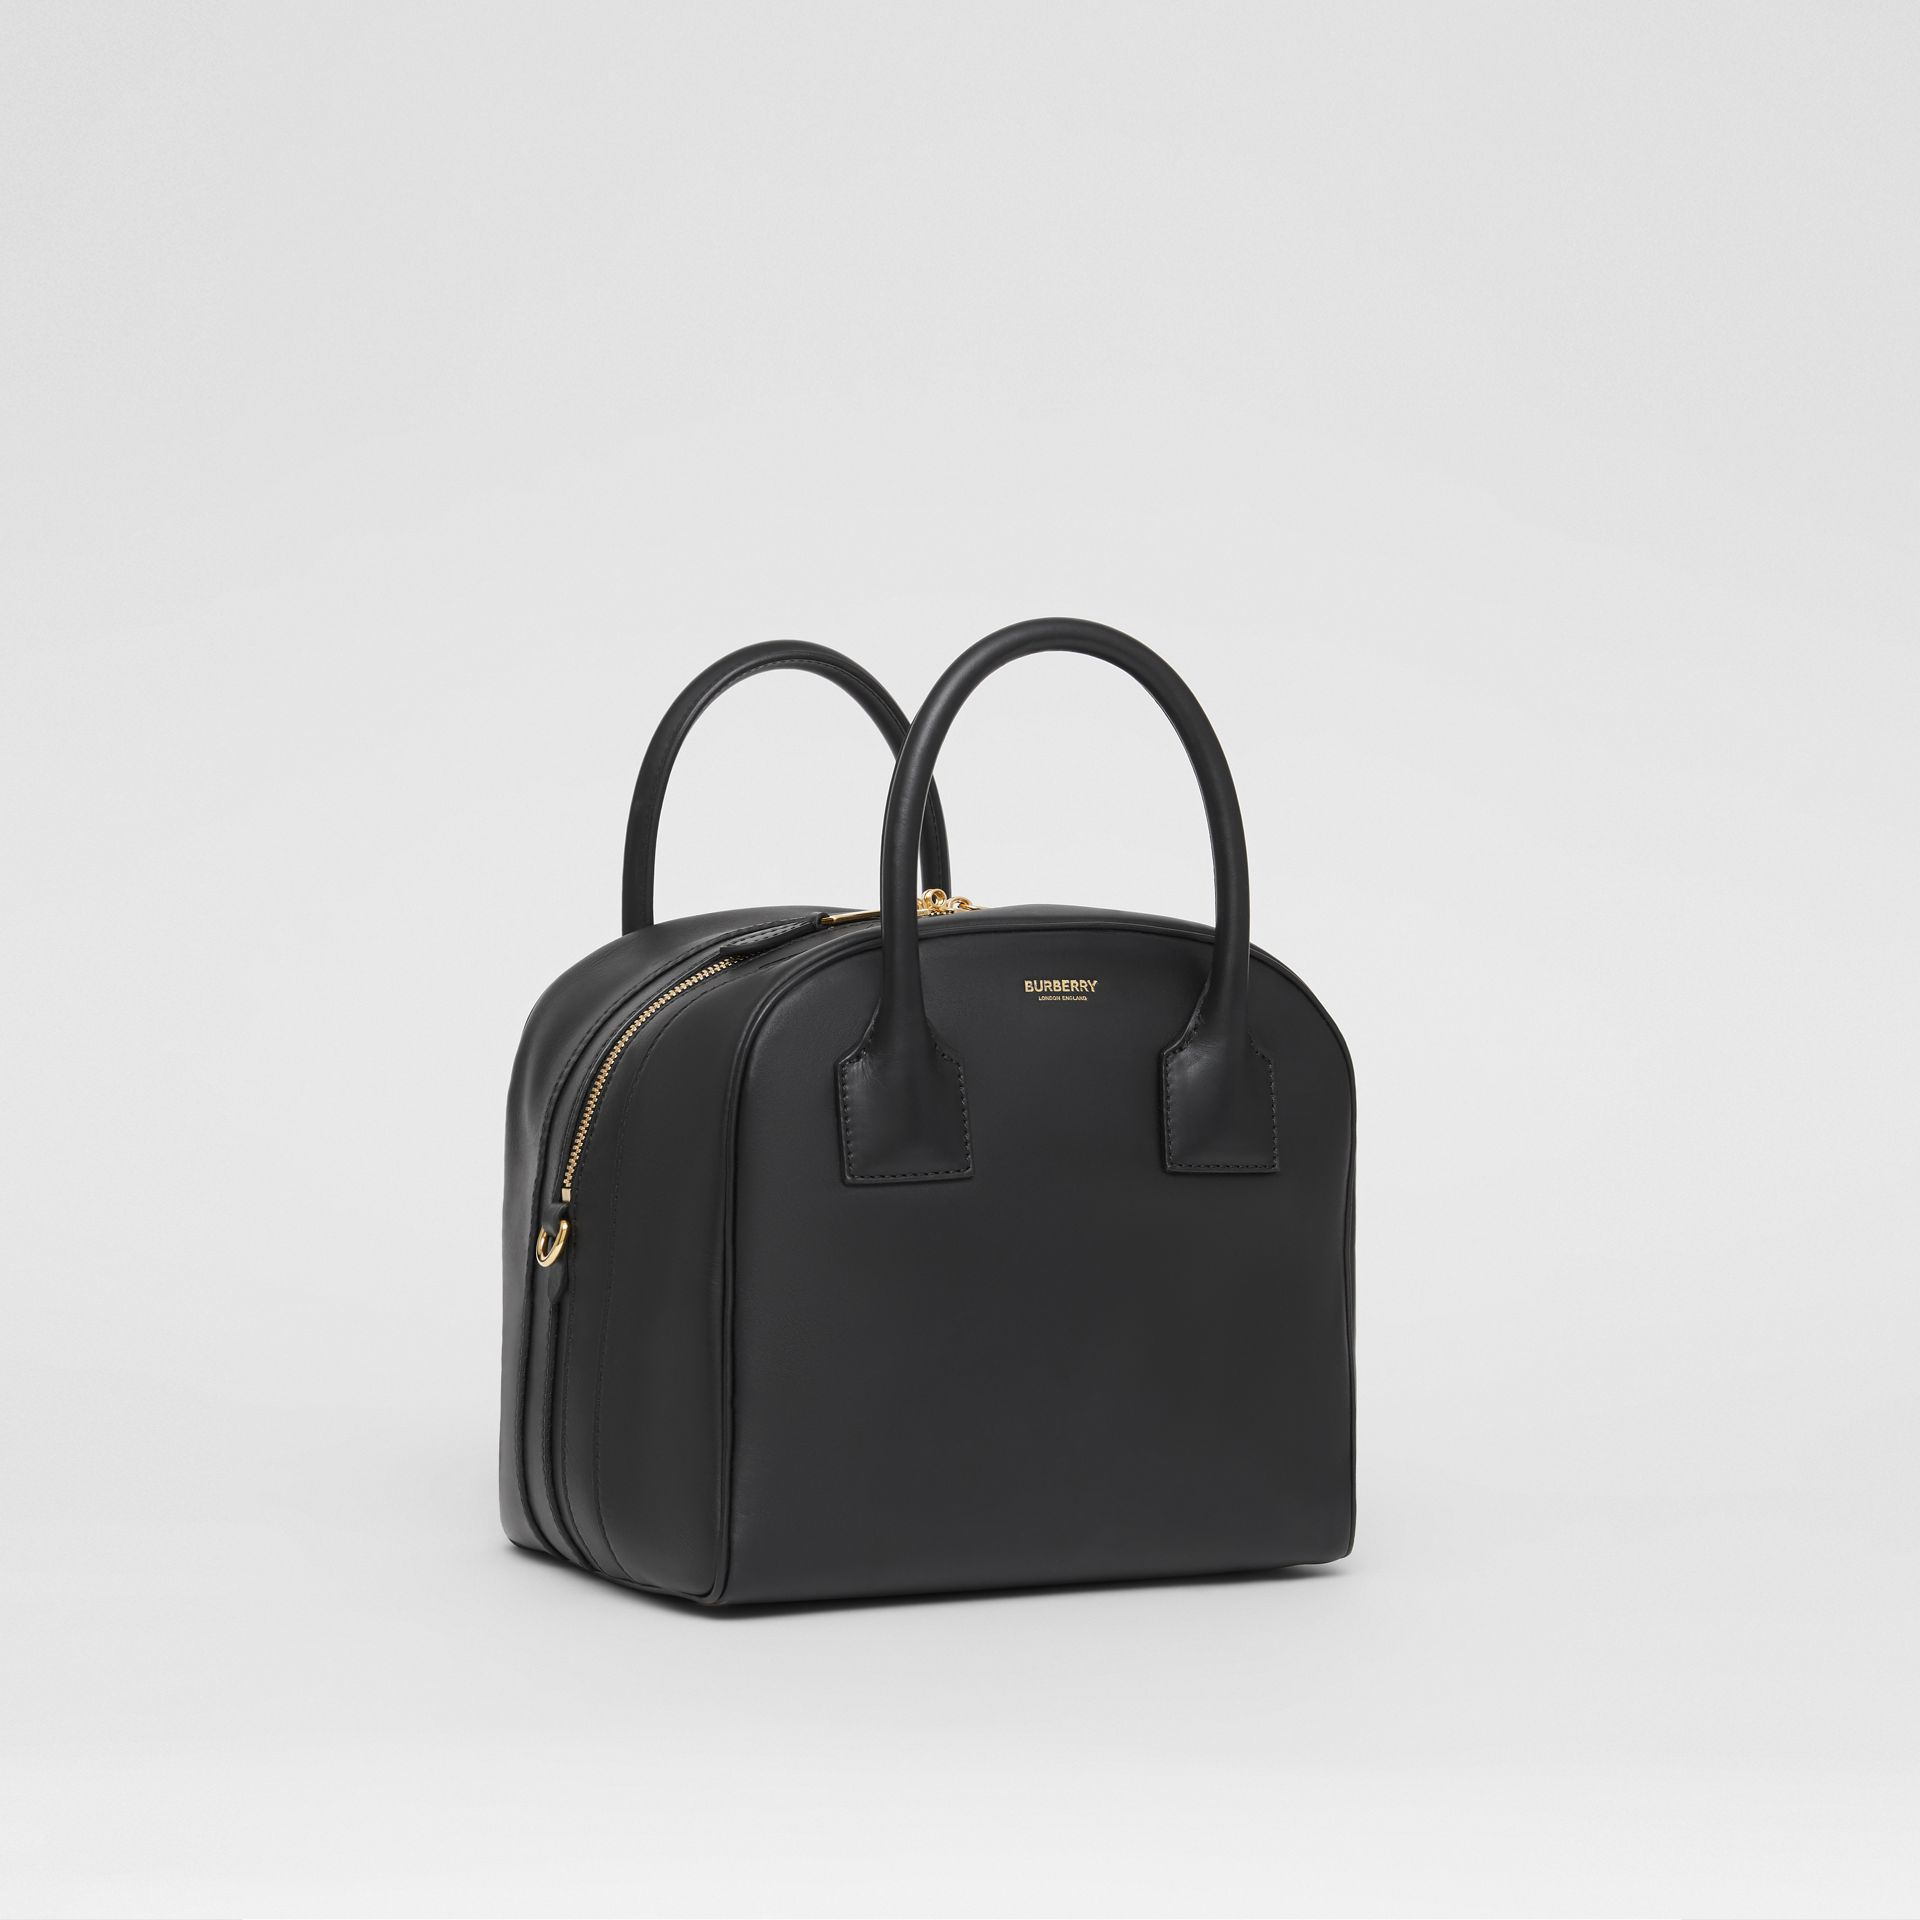 Small Leather Cube Bag in Black - Women | Burberry - gallery image 6